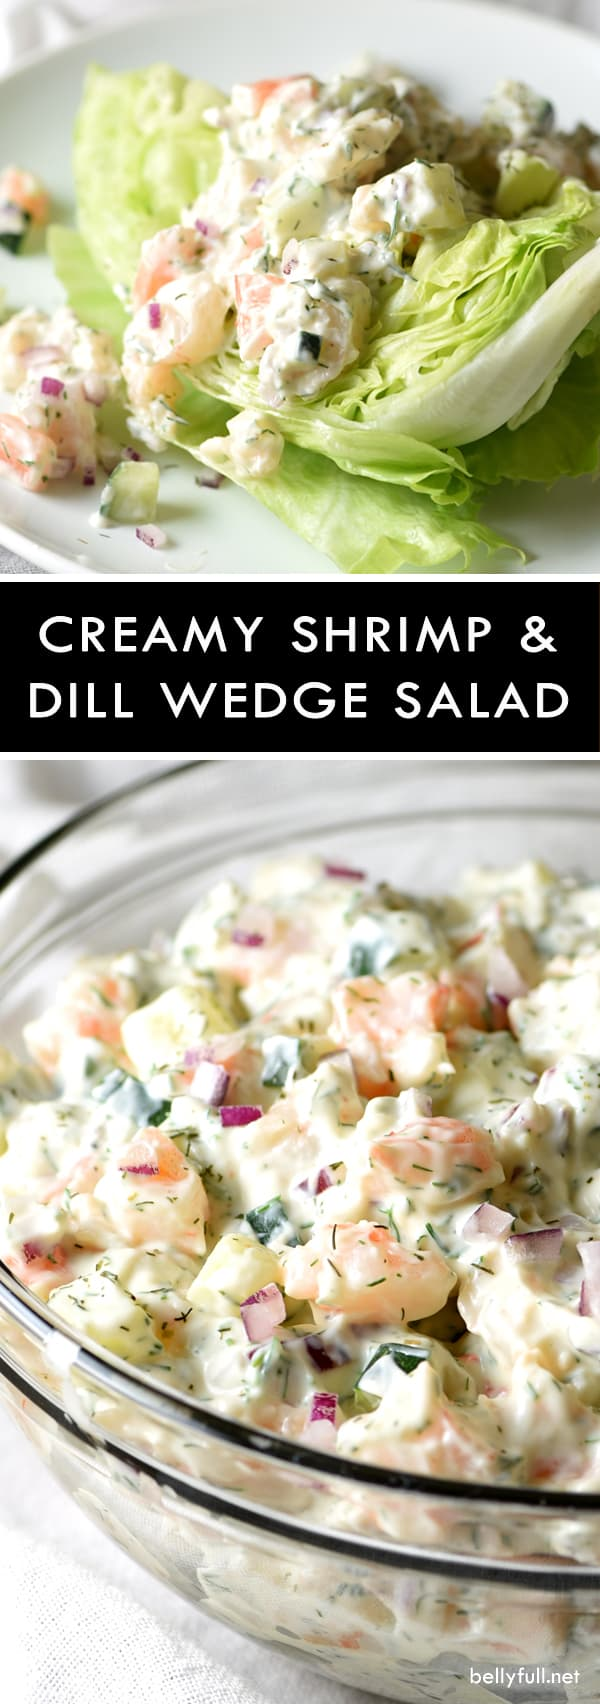 Creamy Shrimp and Dill Wedge Salad - a creamy shrimp and dill mixture sit on top of crisp, fresh lettuce. This salad is layered with flavor, refreshing, and super easy to make!